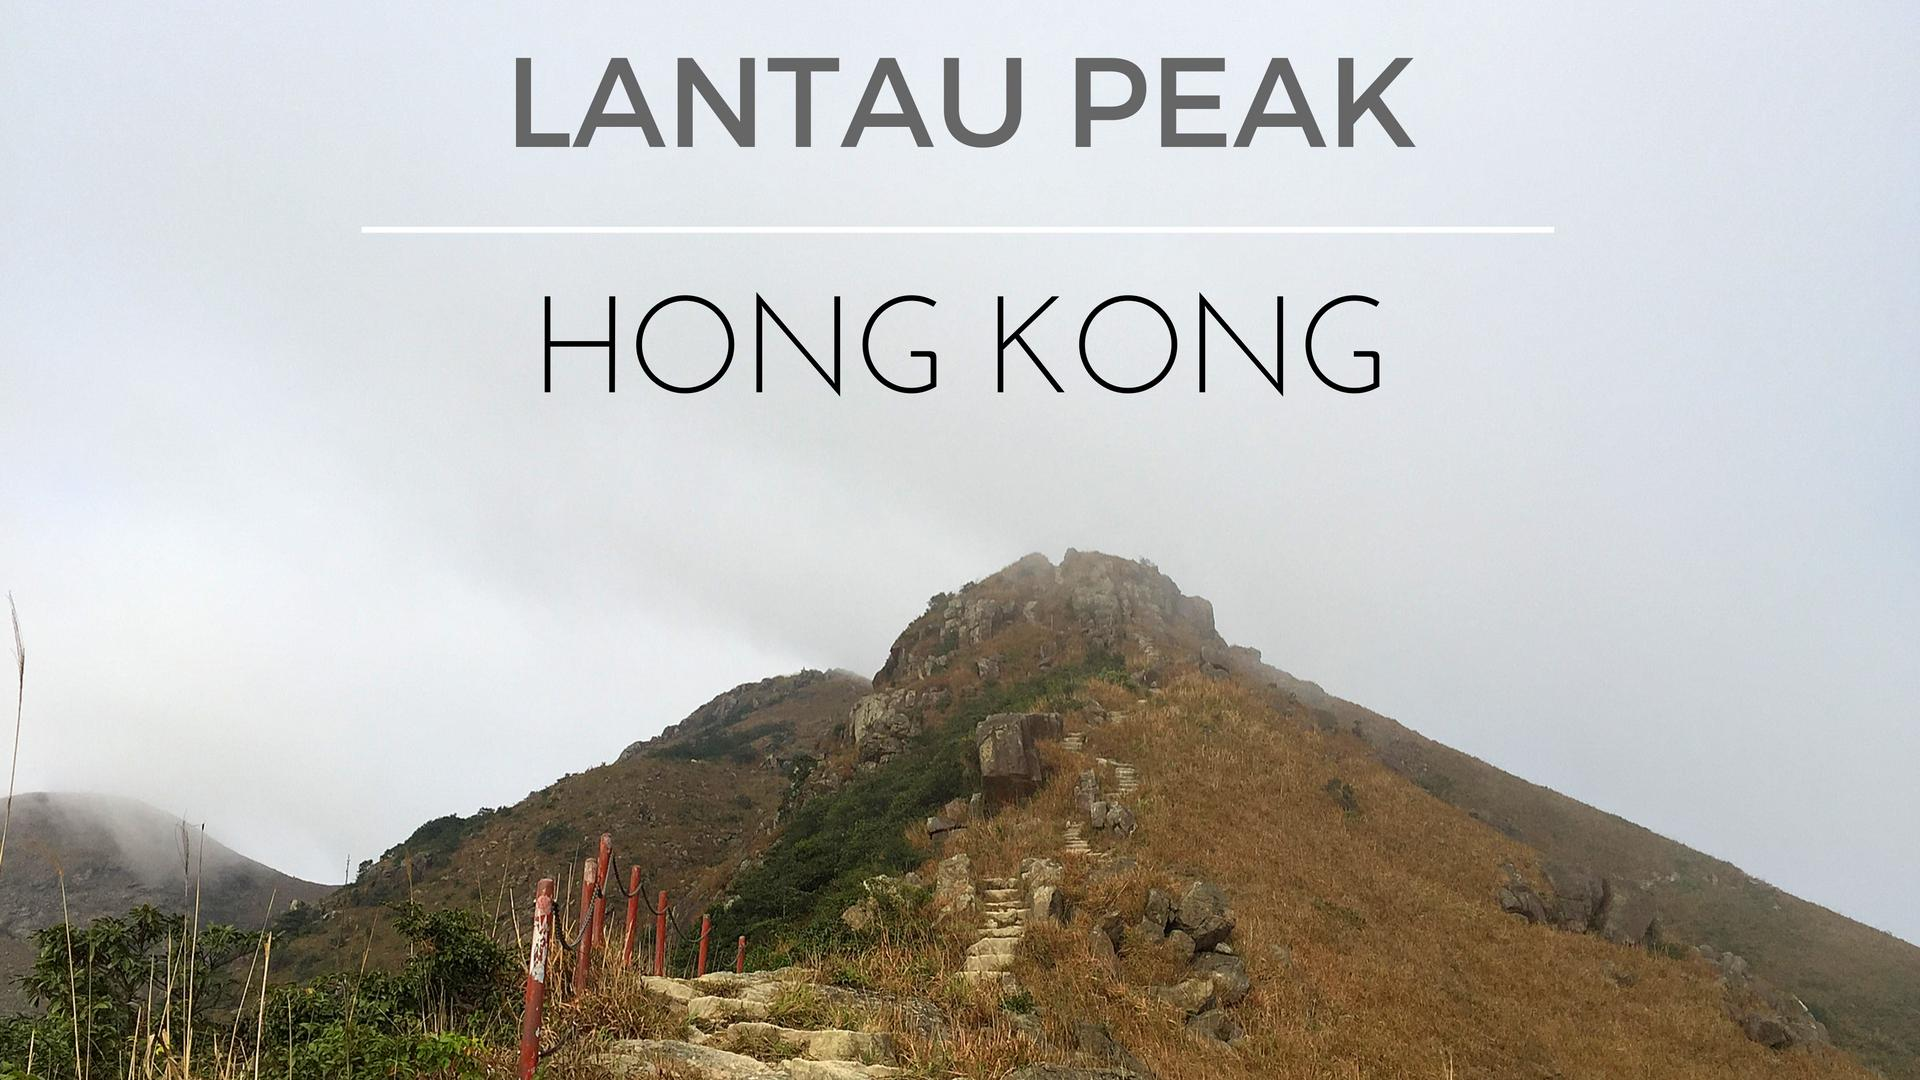 Hiking Up the Lantau Peak in Hong Kong